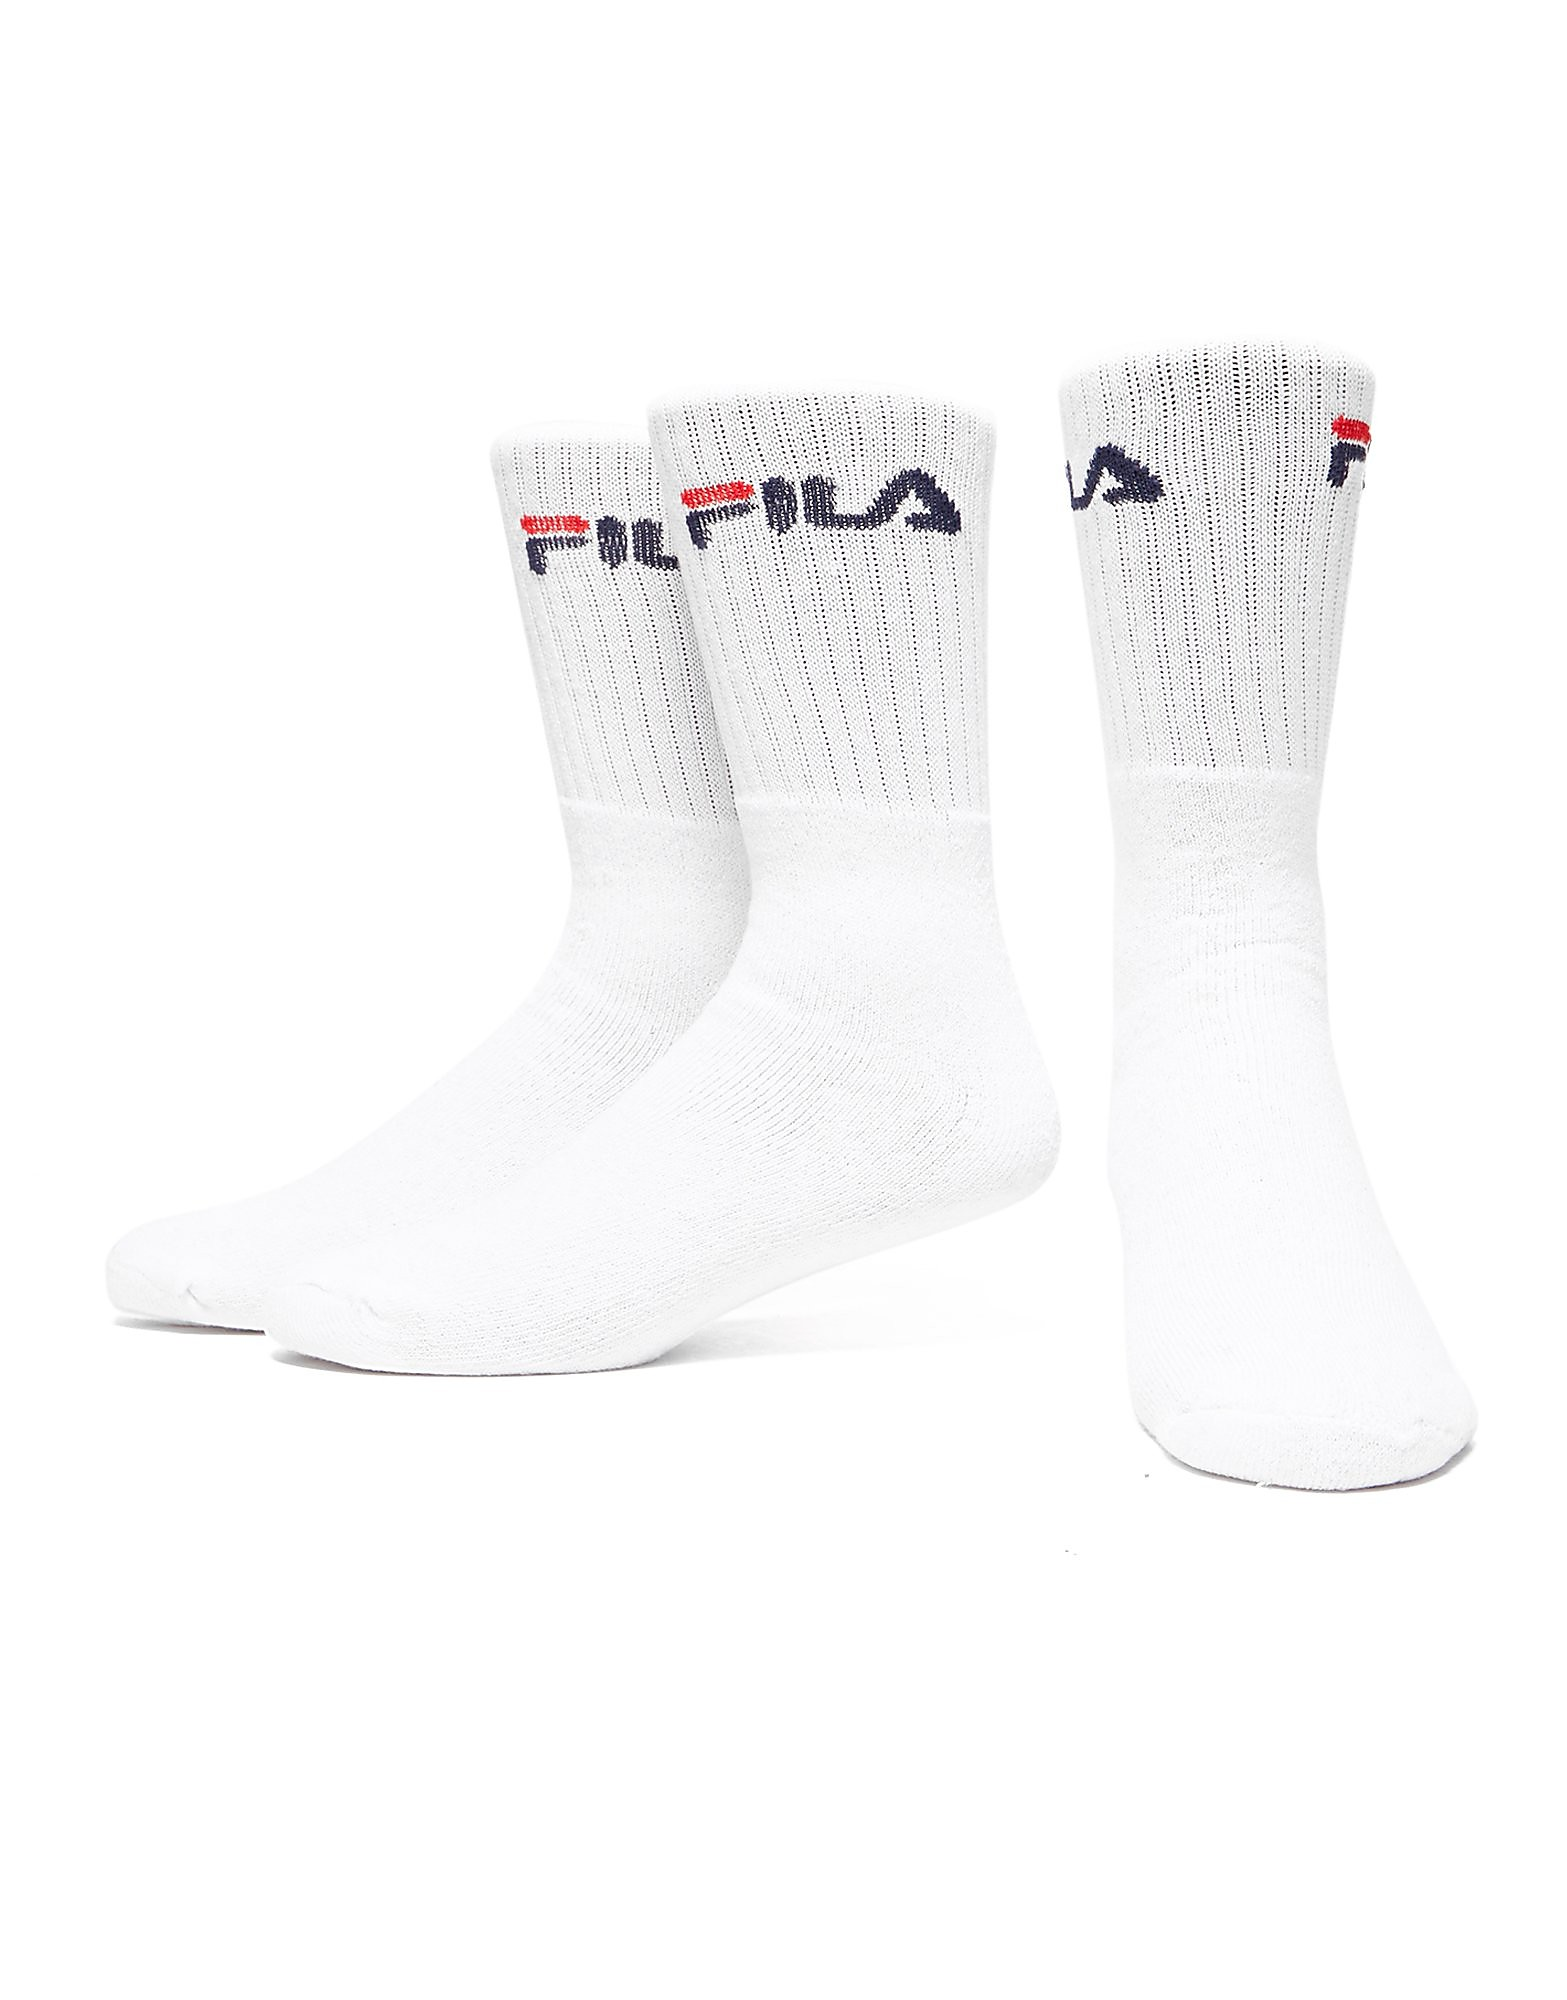 Mens White Fila Crew Training Socks (3 Pairs)